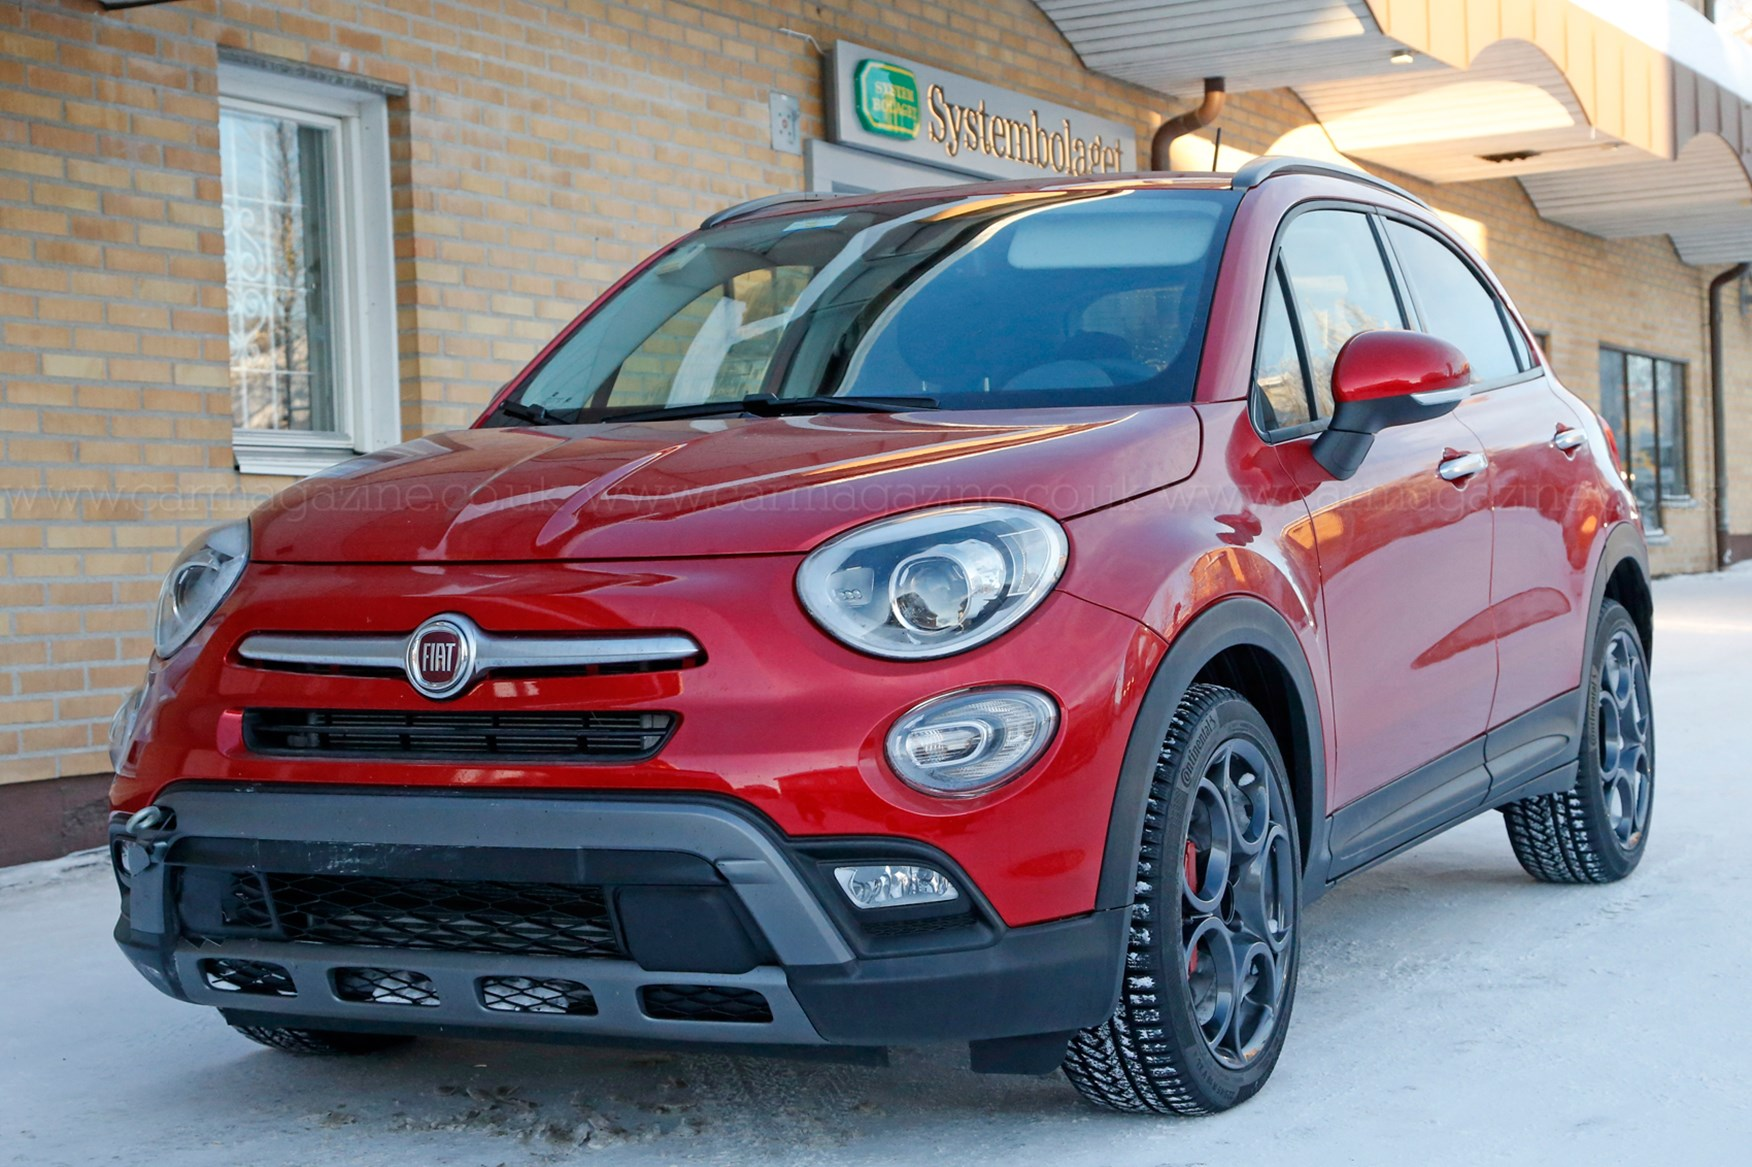 Fiat 500X Abarth 2018 is Fiat readying a hot hatch crossover